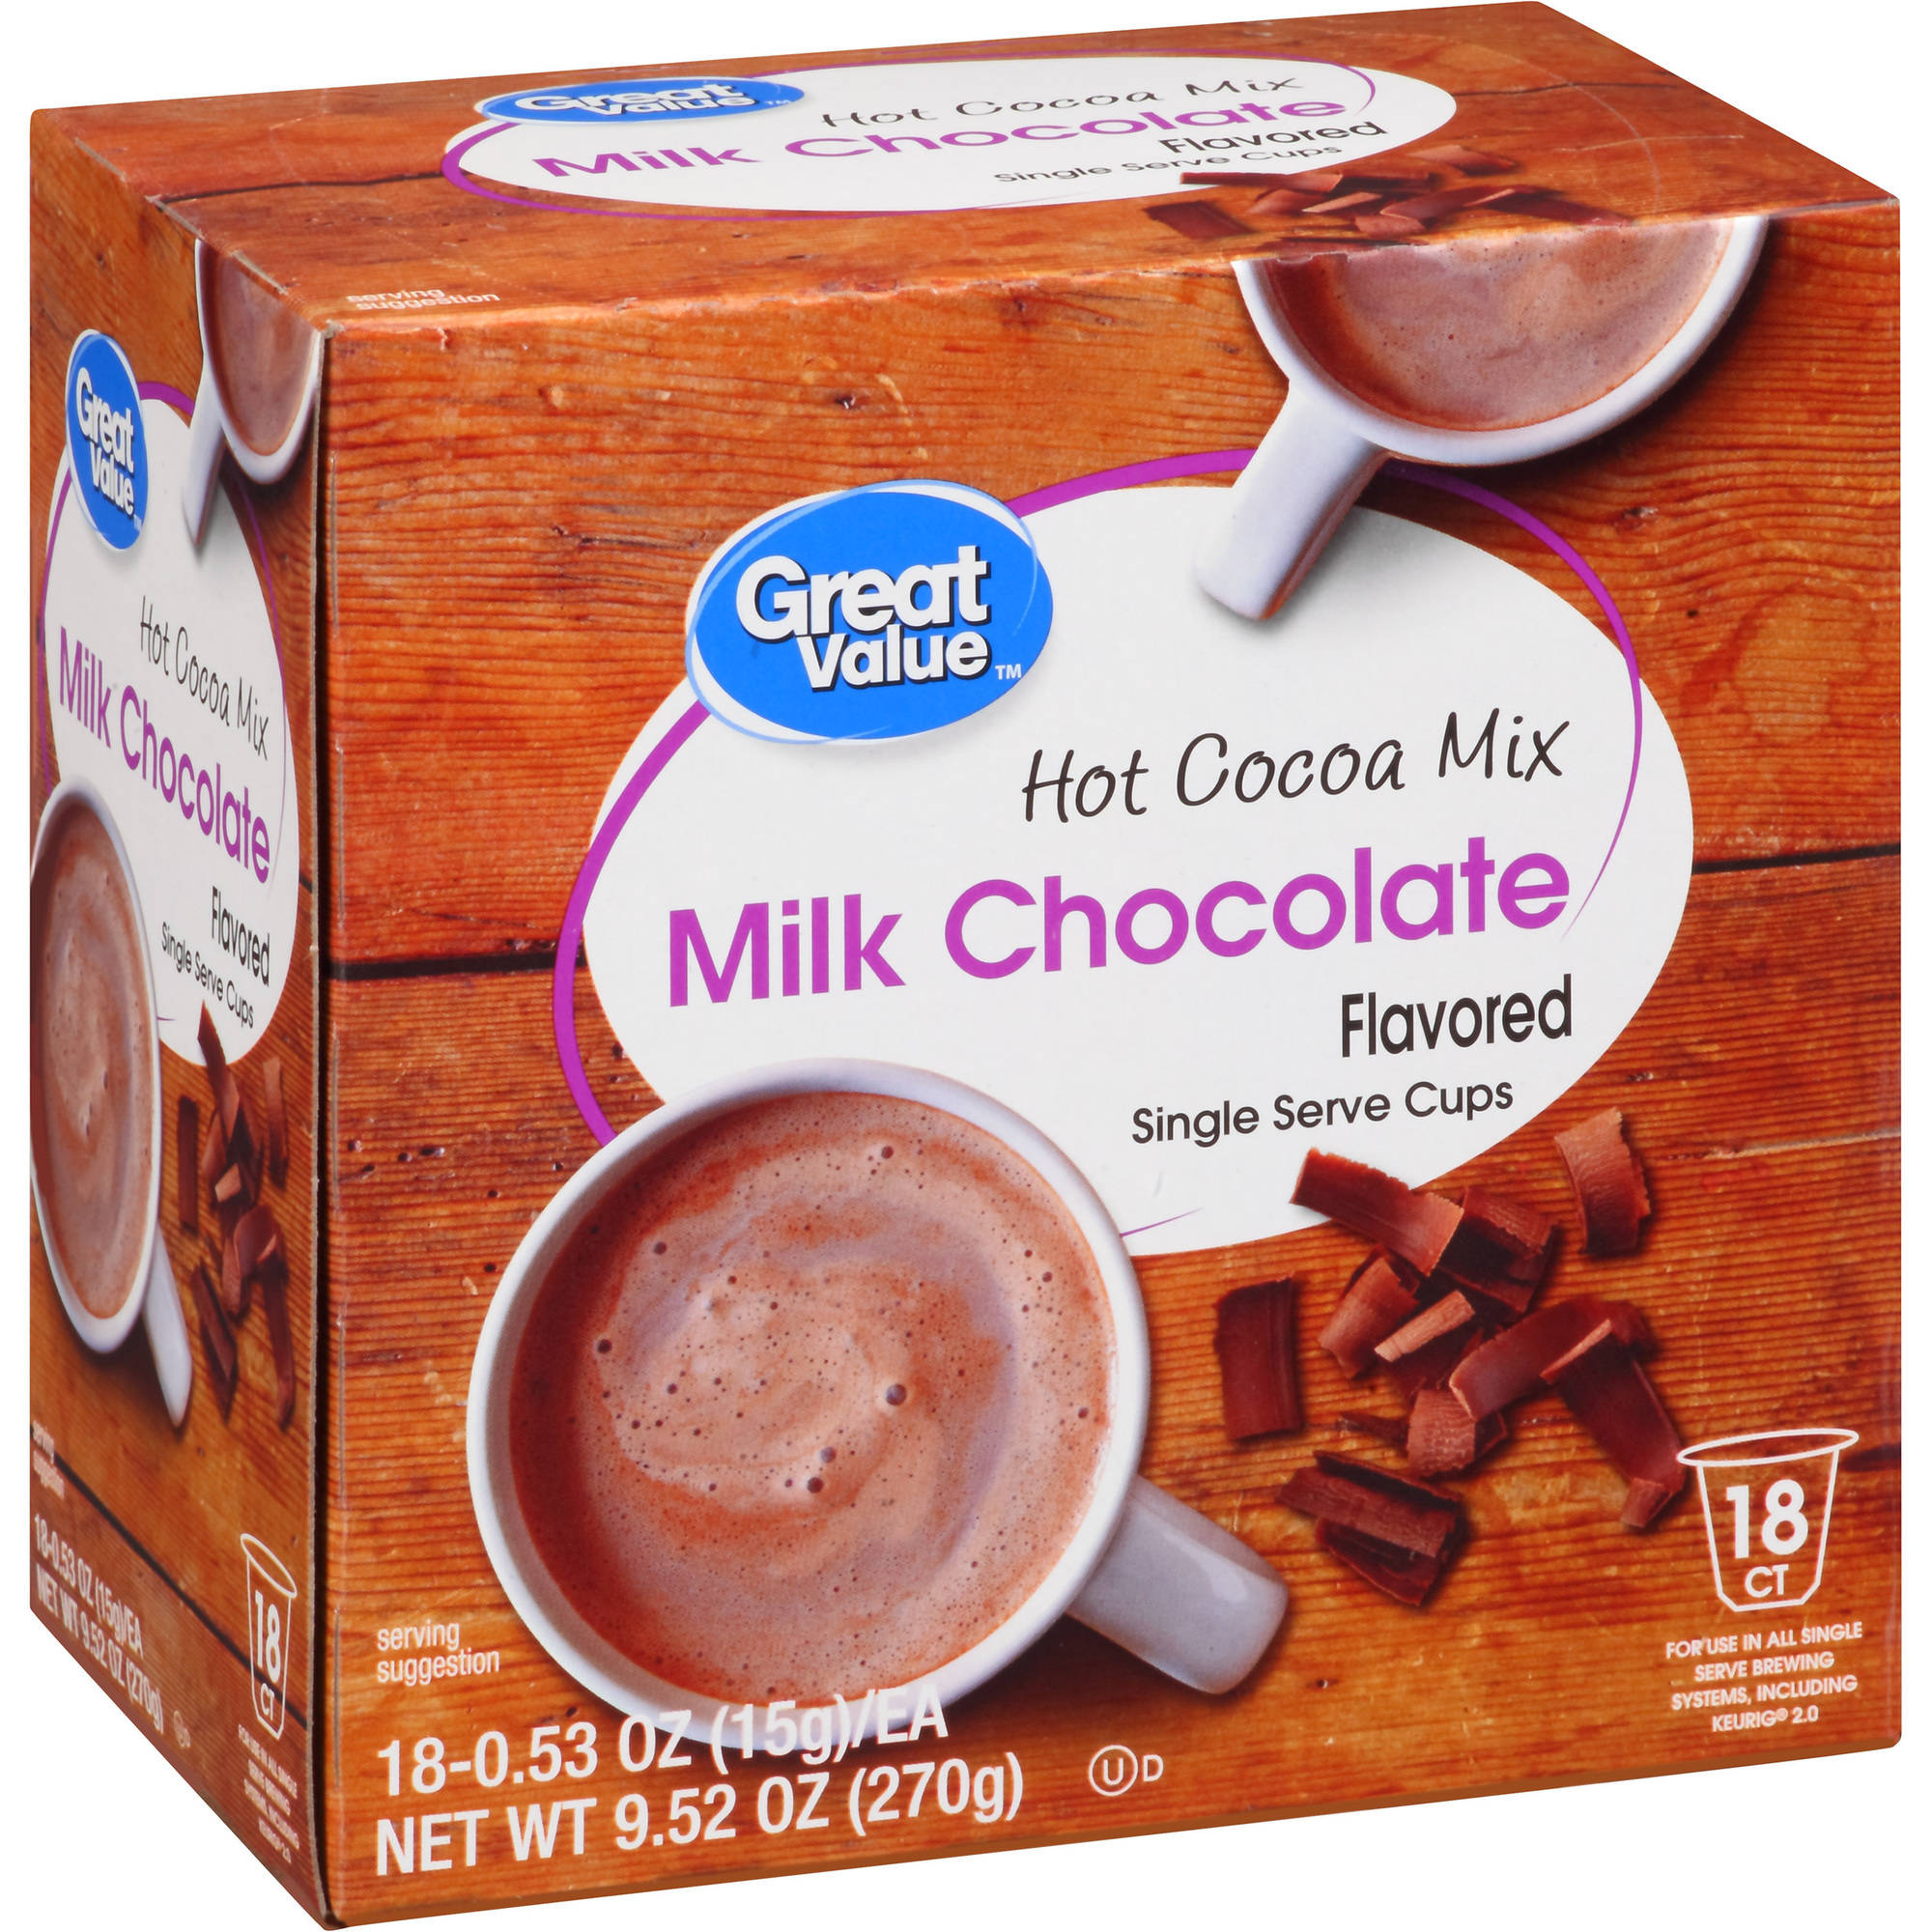 Great Value Milk Chocolate Hot Cocoa Mix Single Serve Cups, 18 Count by